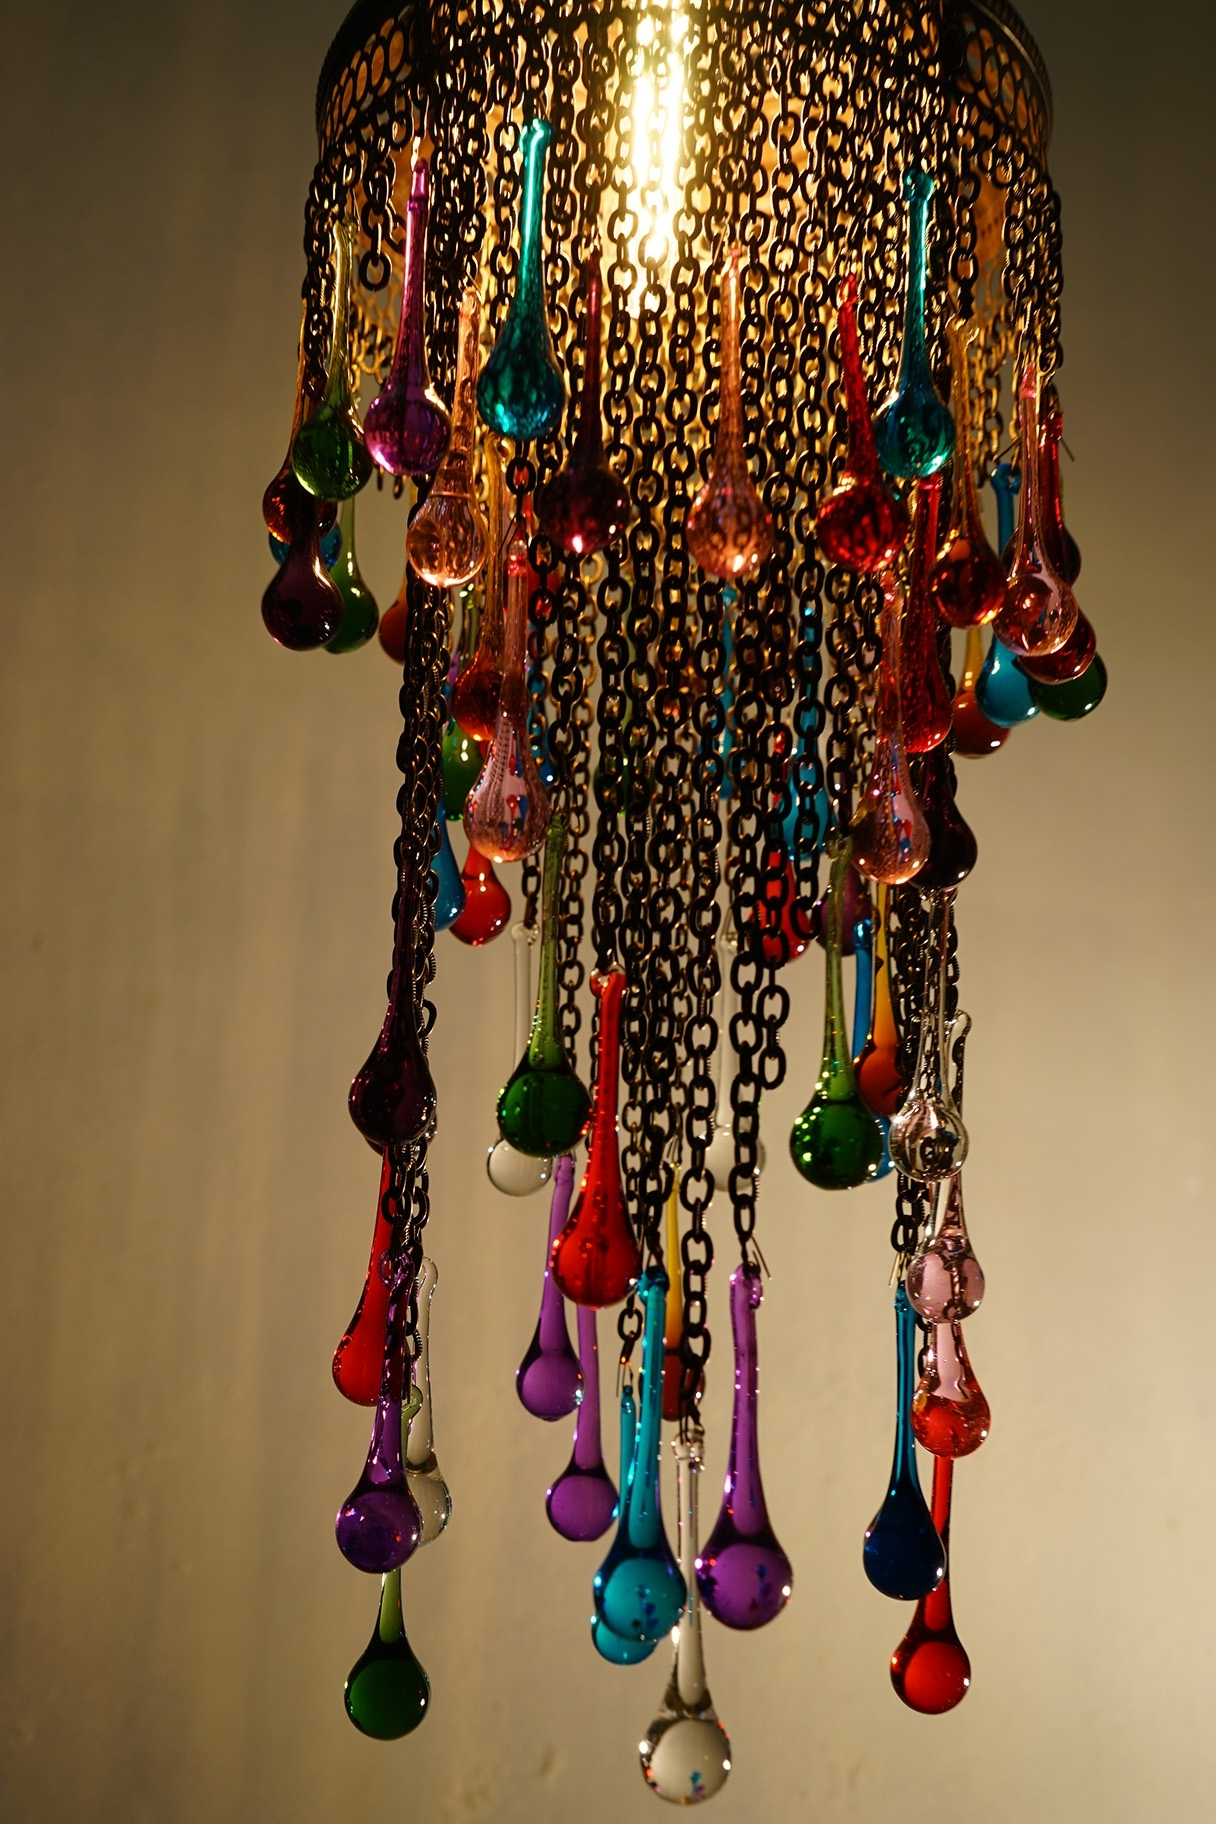 Latest Highest Quality Mosaic Chandeliers & Turkish Lights Pertaining To Colourful Chandeliers (View 19 of 20)